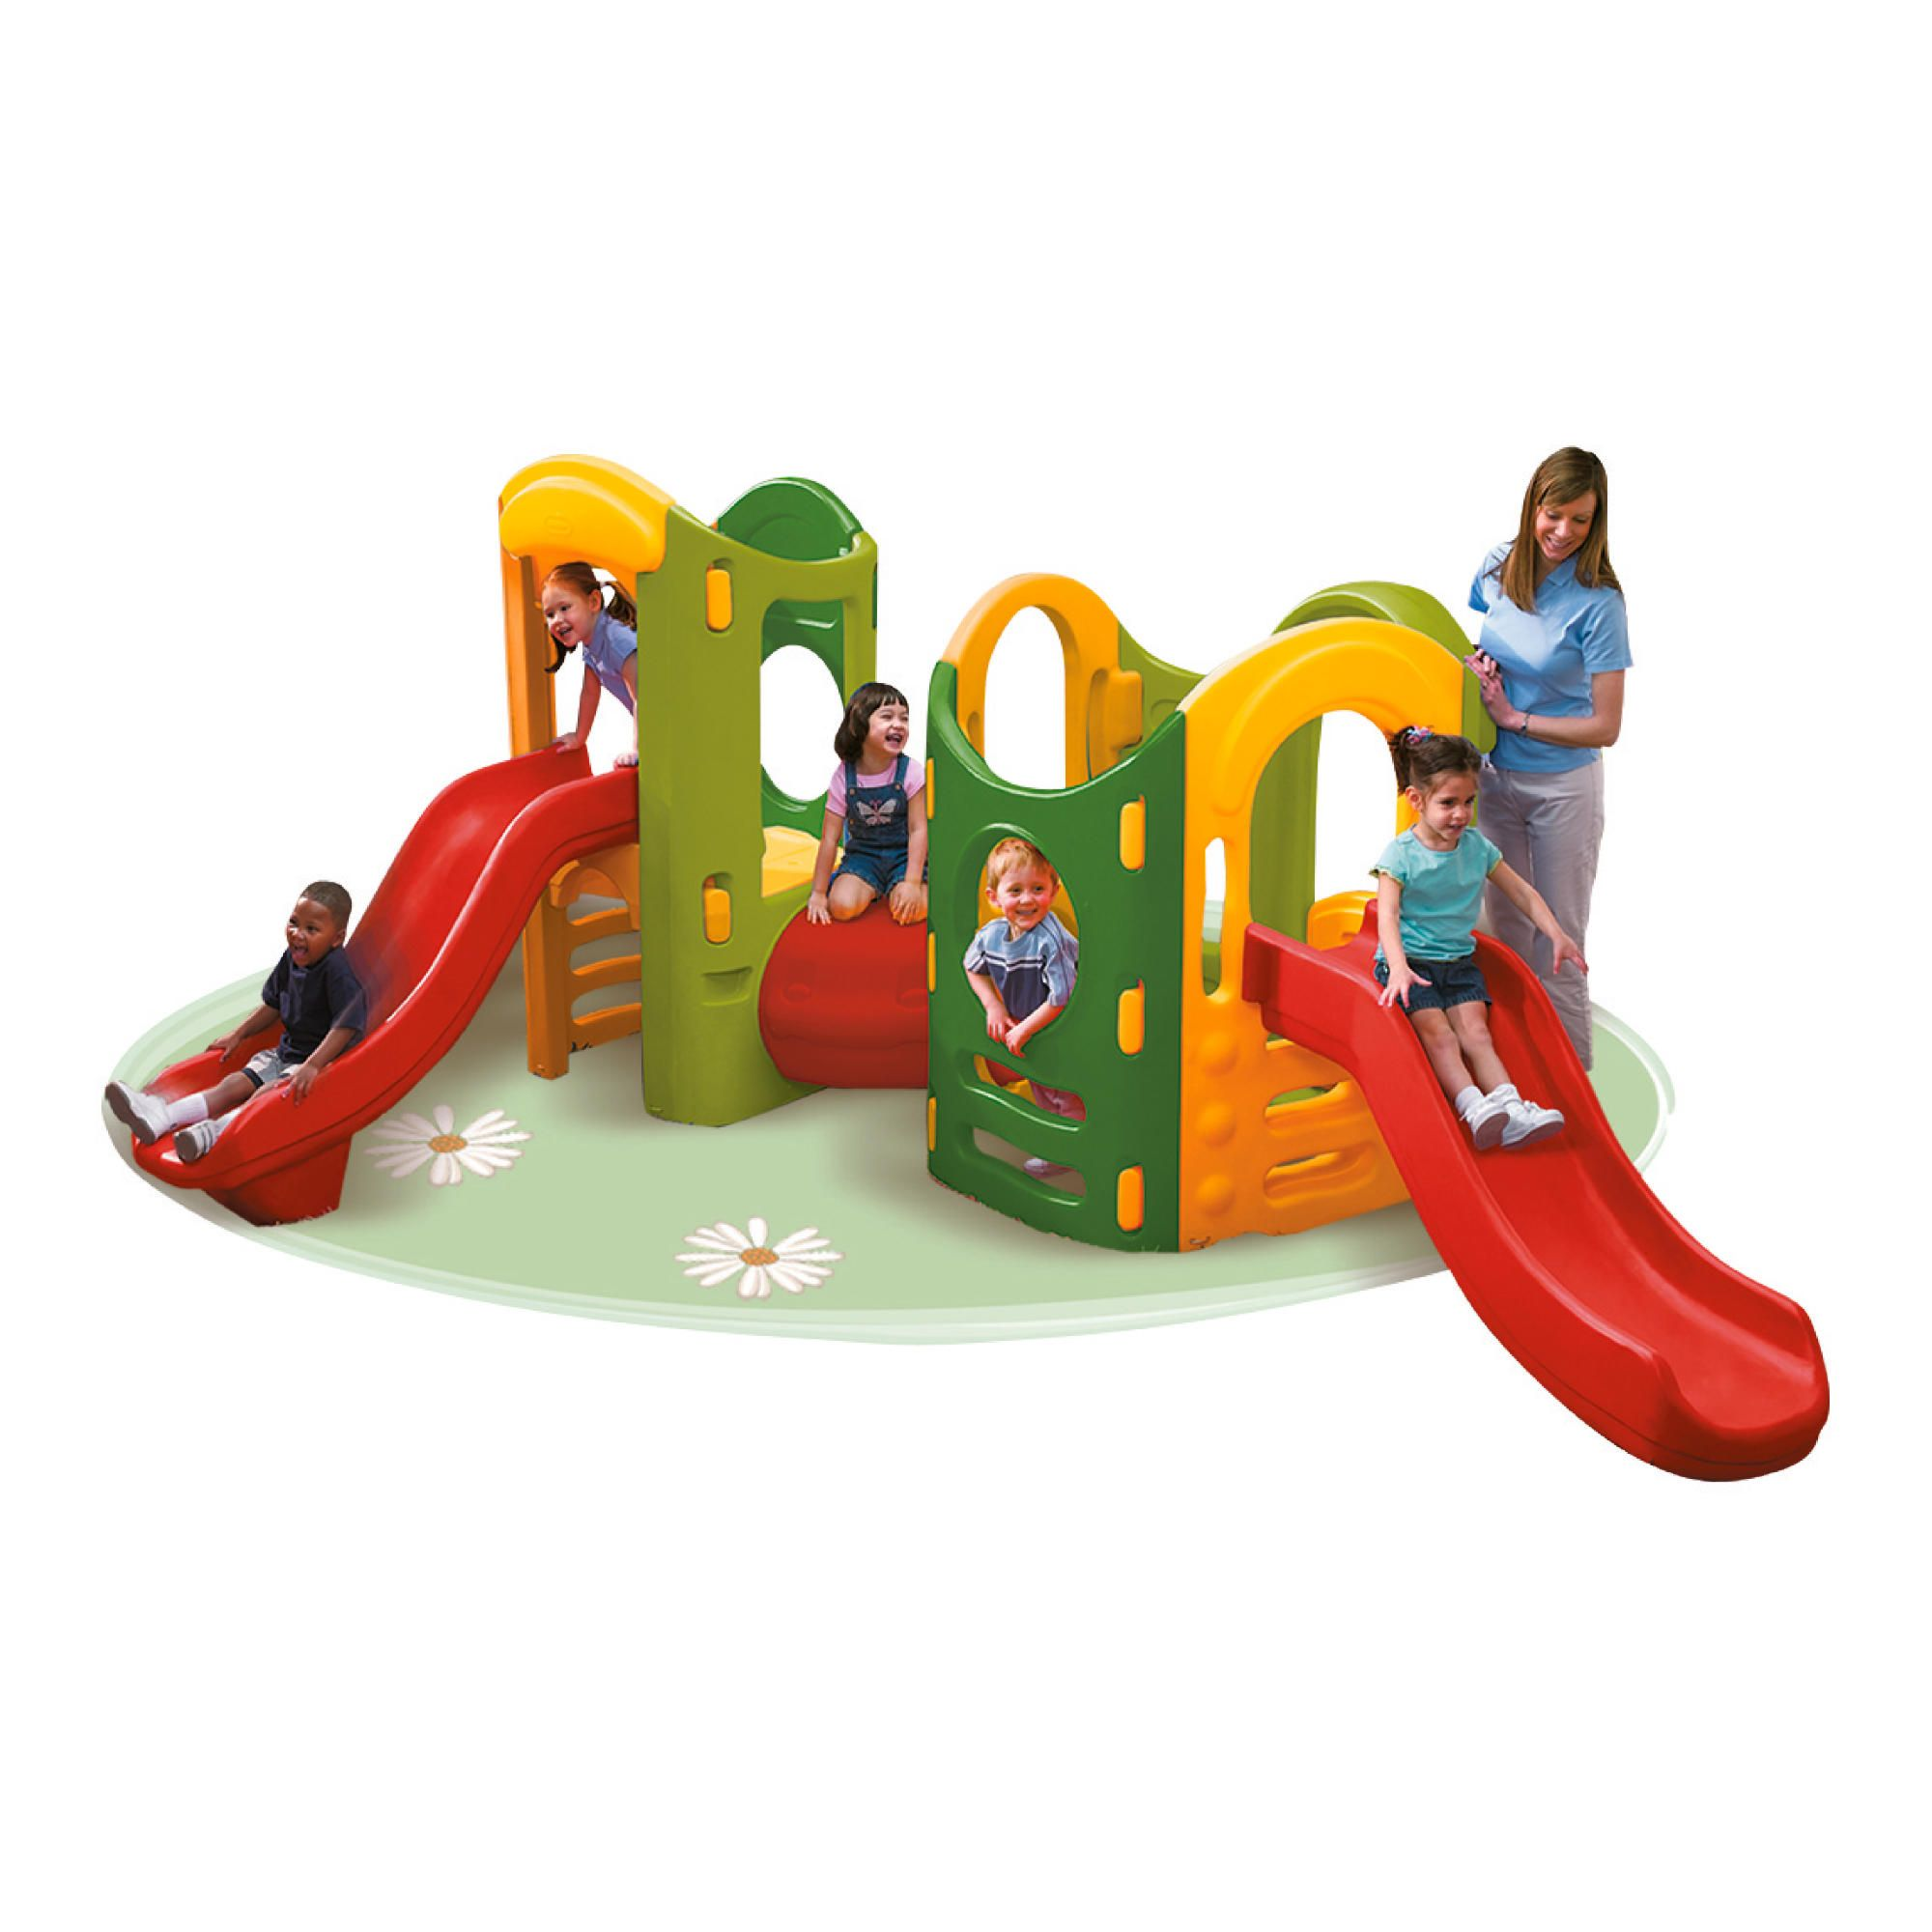 Little Tikes 8-in-1 Adjustable Playground at Tesco Direct